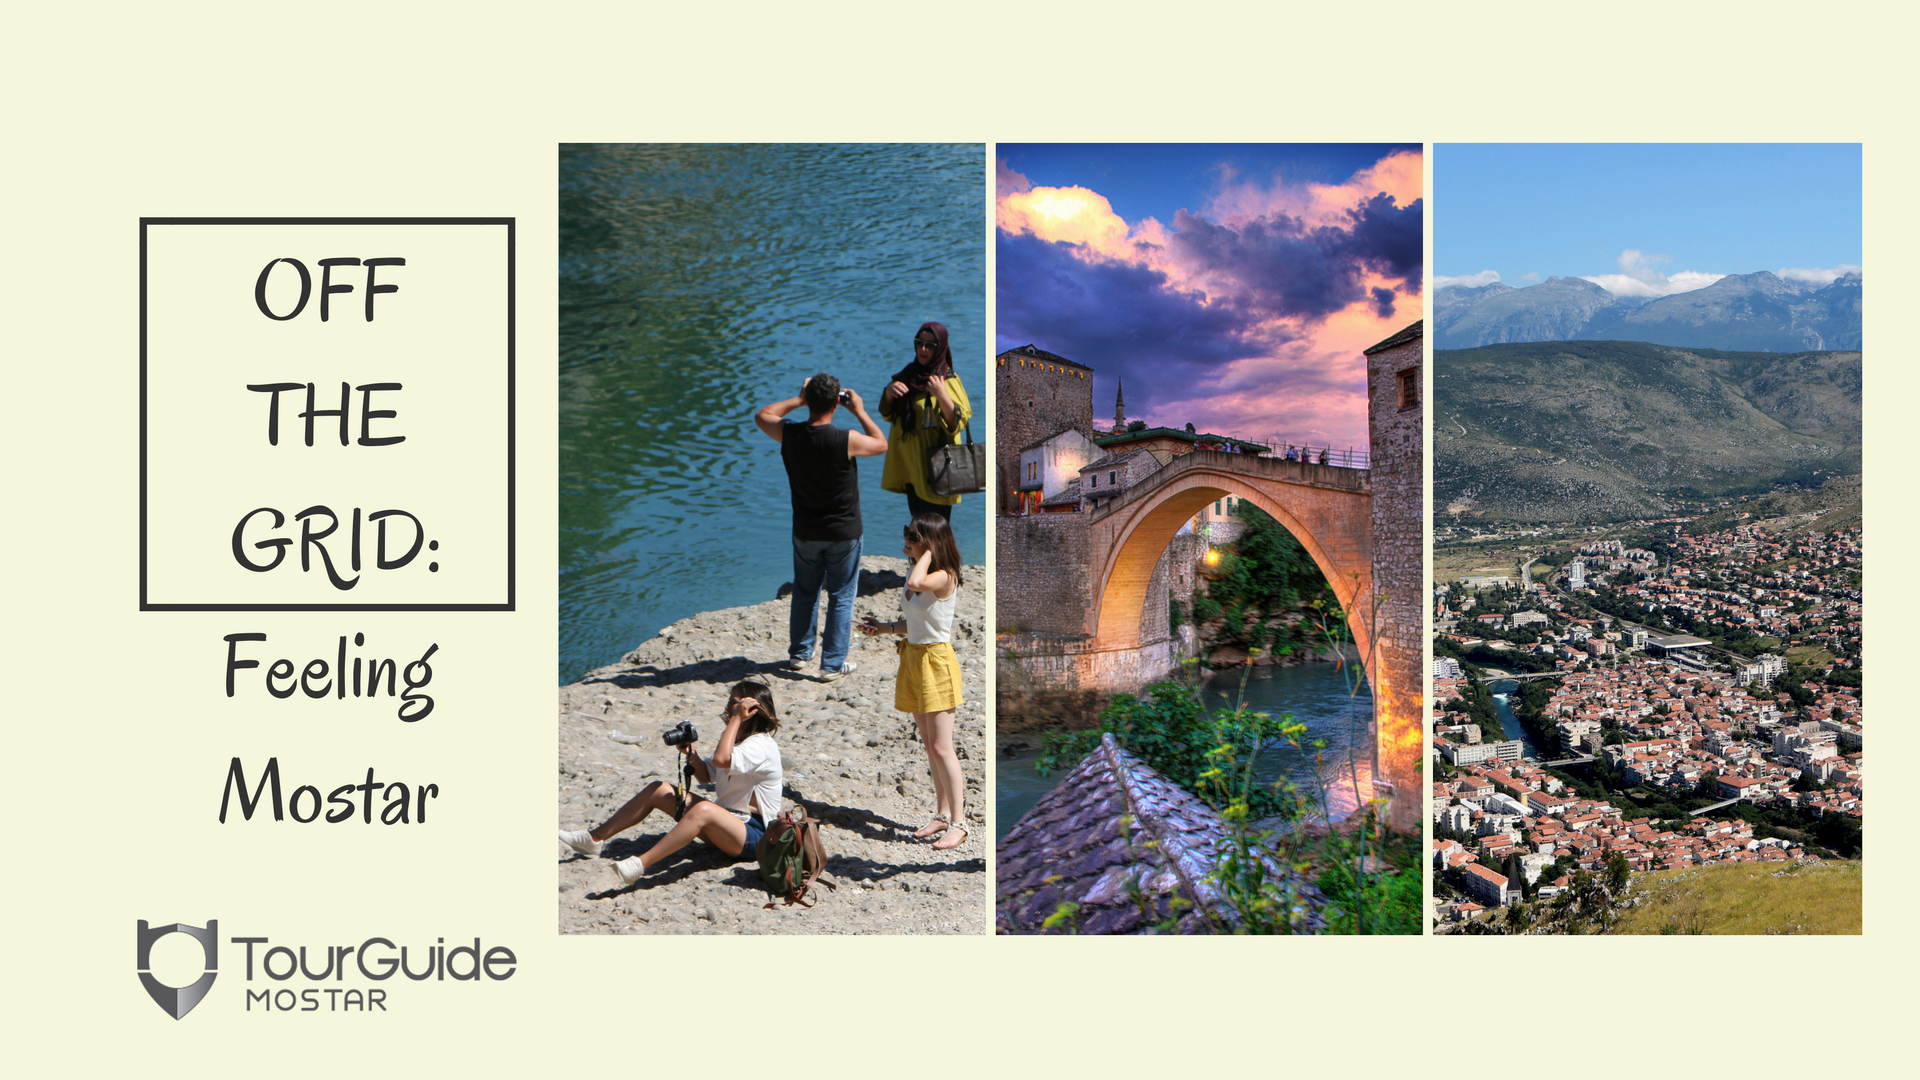 Tour Guide Mostar Brings Five Inspiring Travel Quotes From